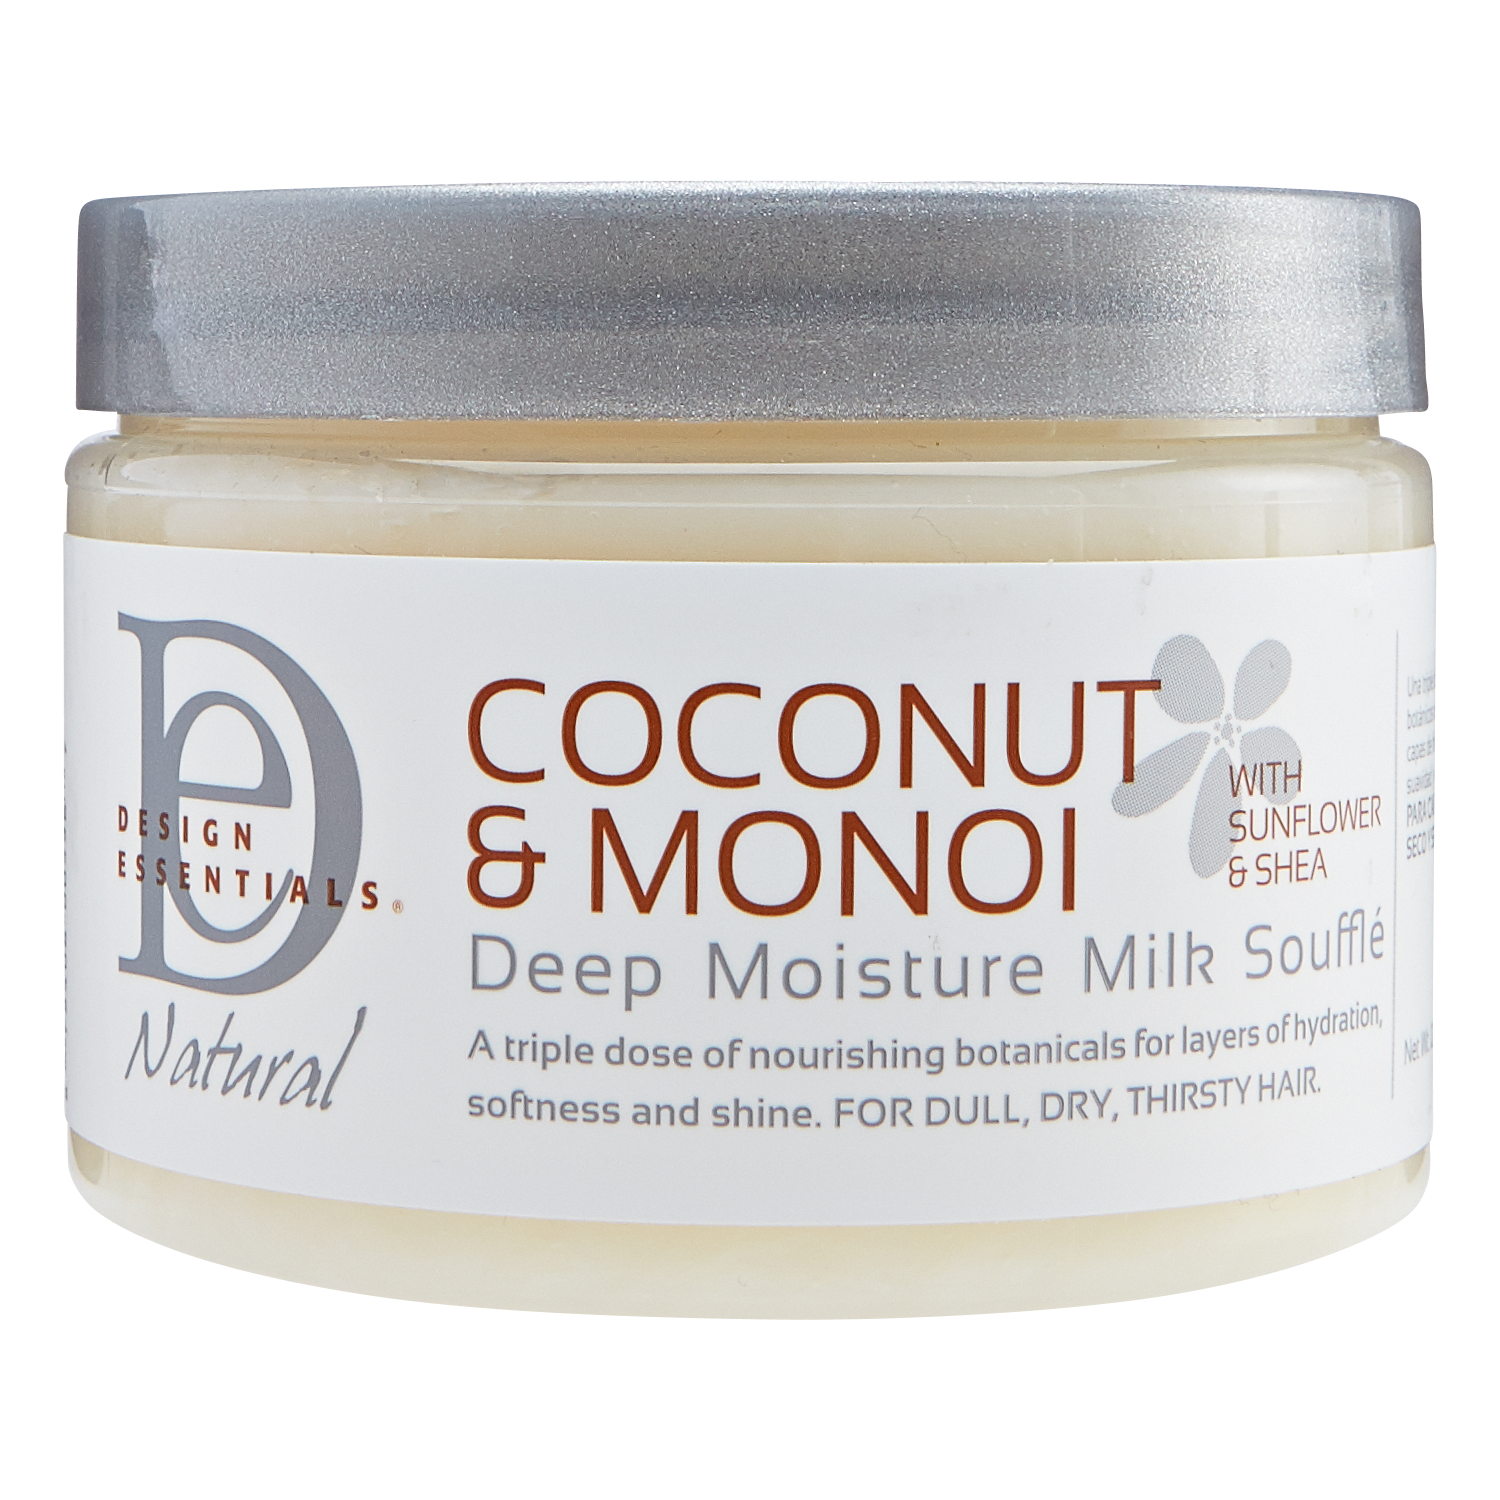 Design Essentials Natural Coconut and Monoi Deep Moisture Masque